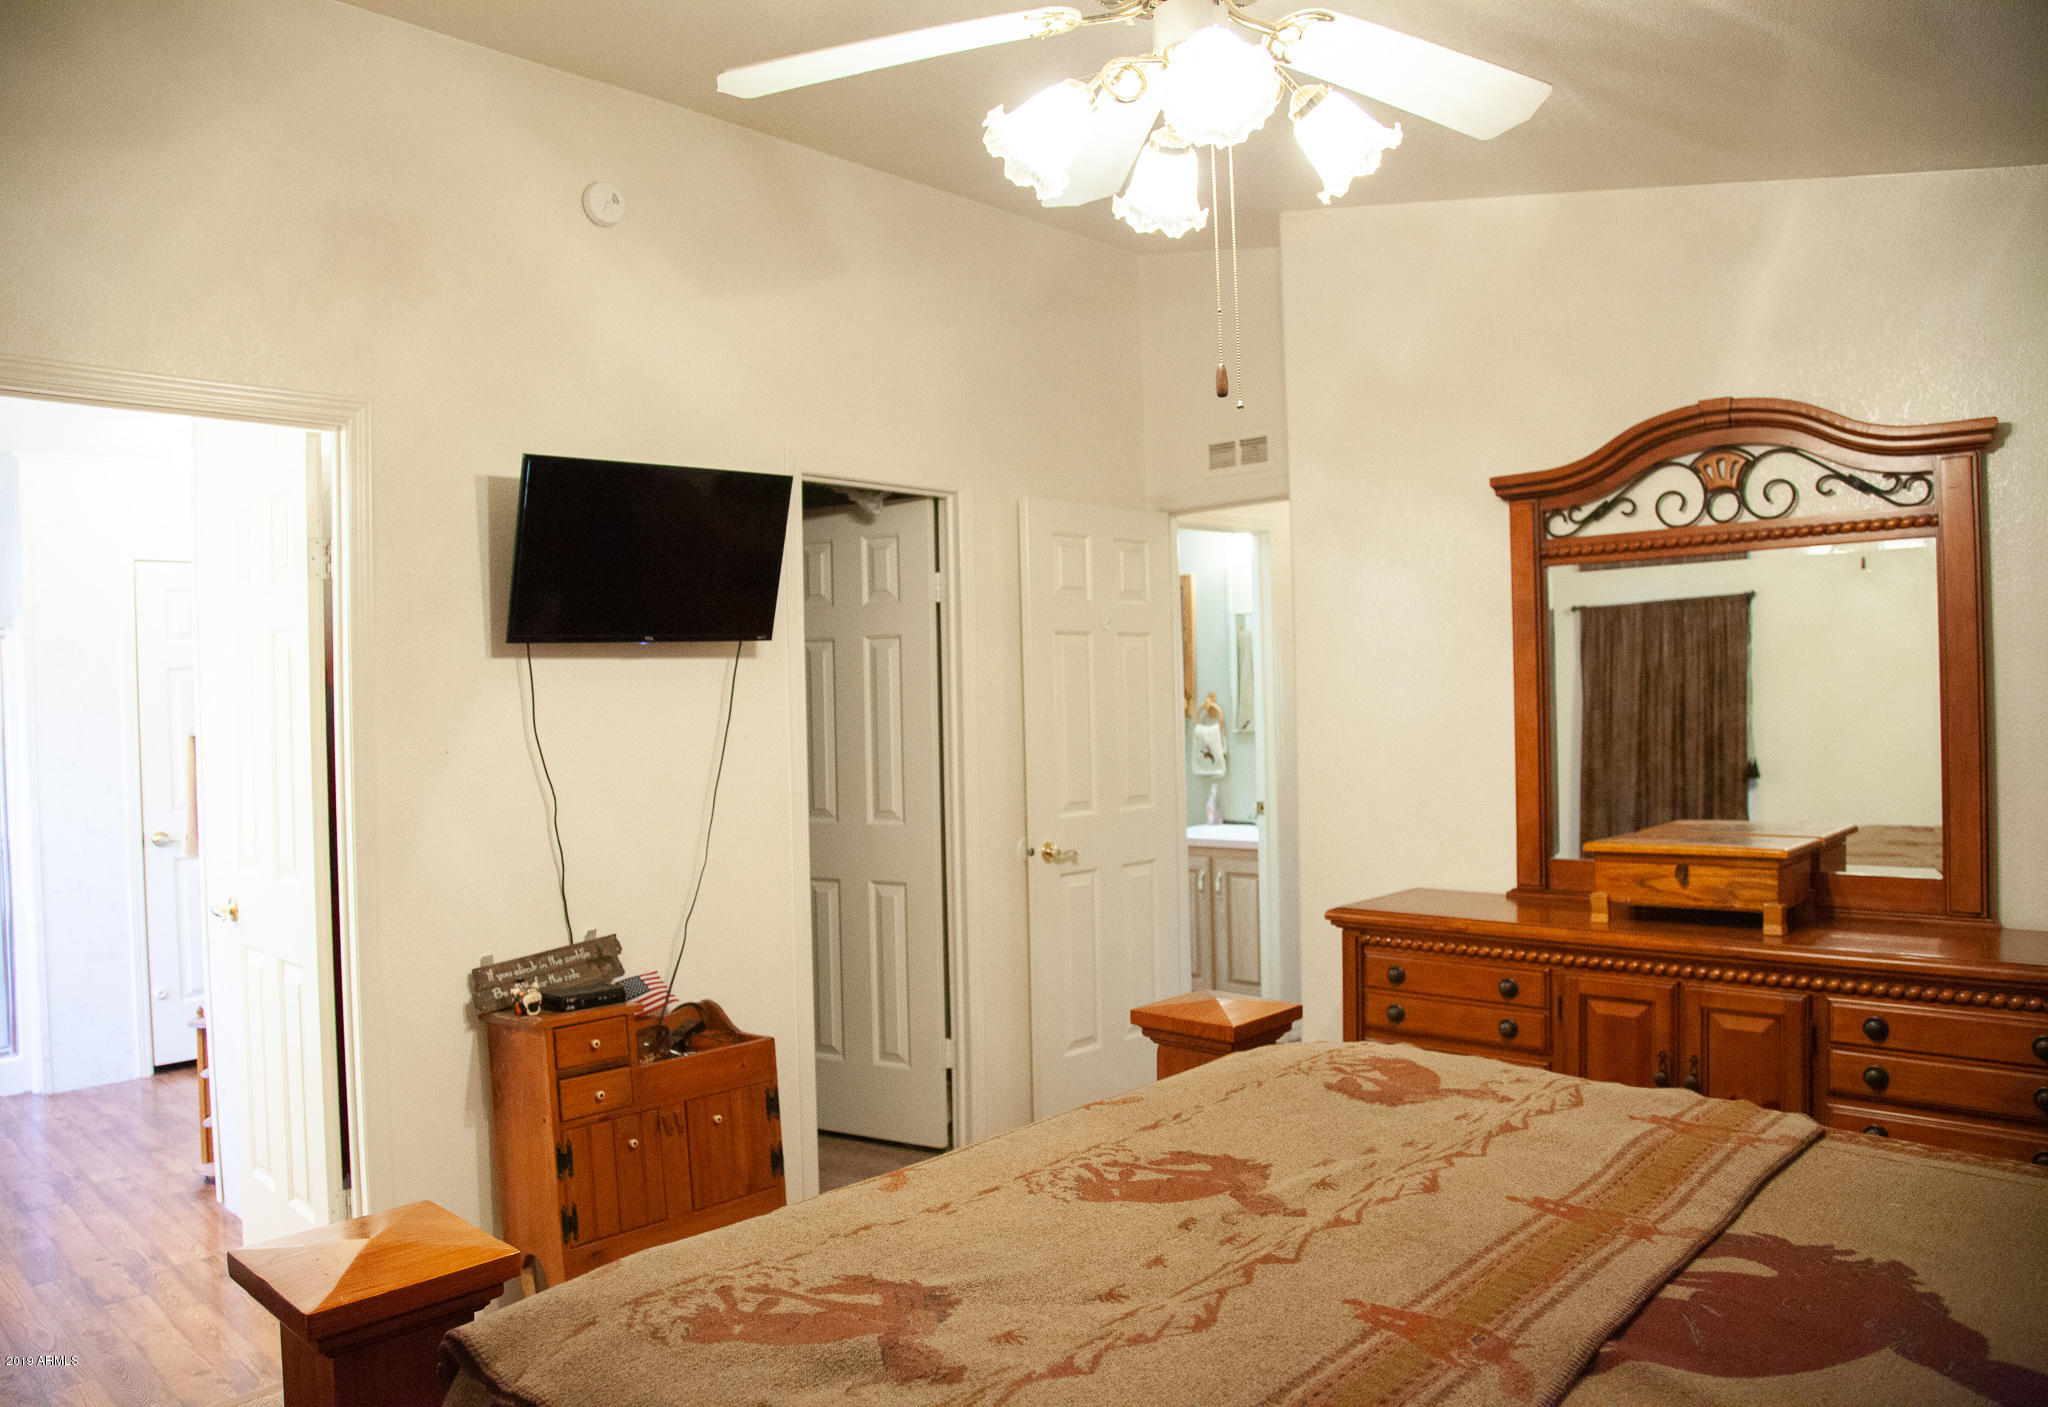 2130 CAPRICE Trail, Overgaard, Arizona 85933, 2 Bedrooms Bedrooms, ,Residential,For Sale,2130 CAPRICE Trail,5990407